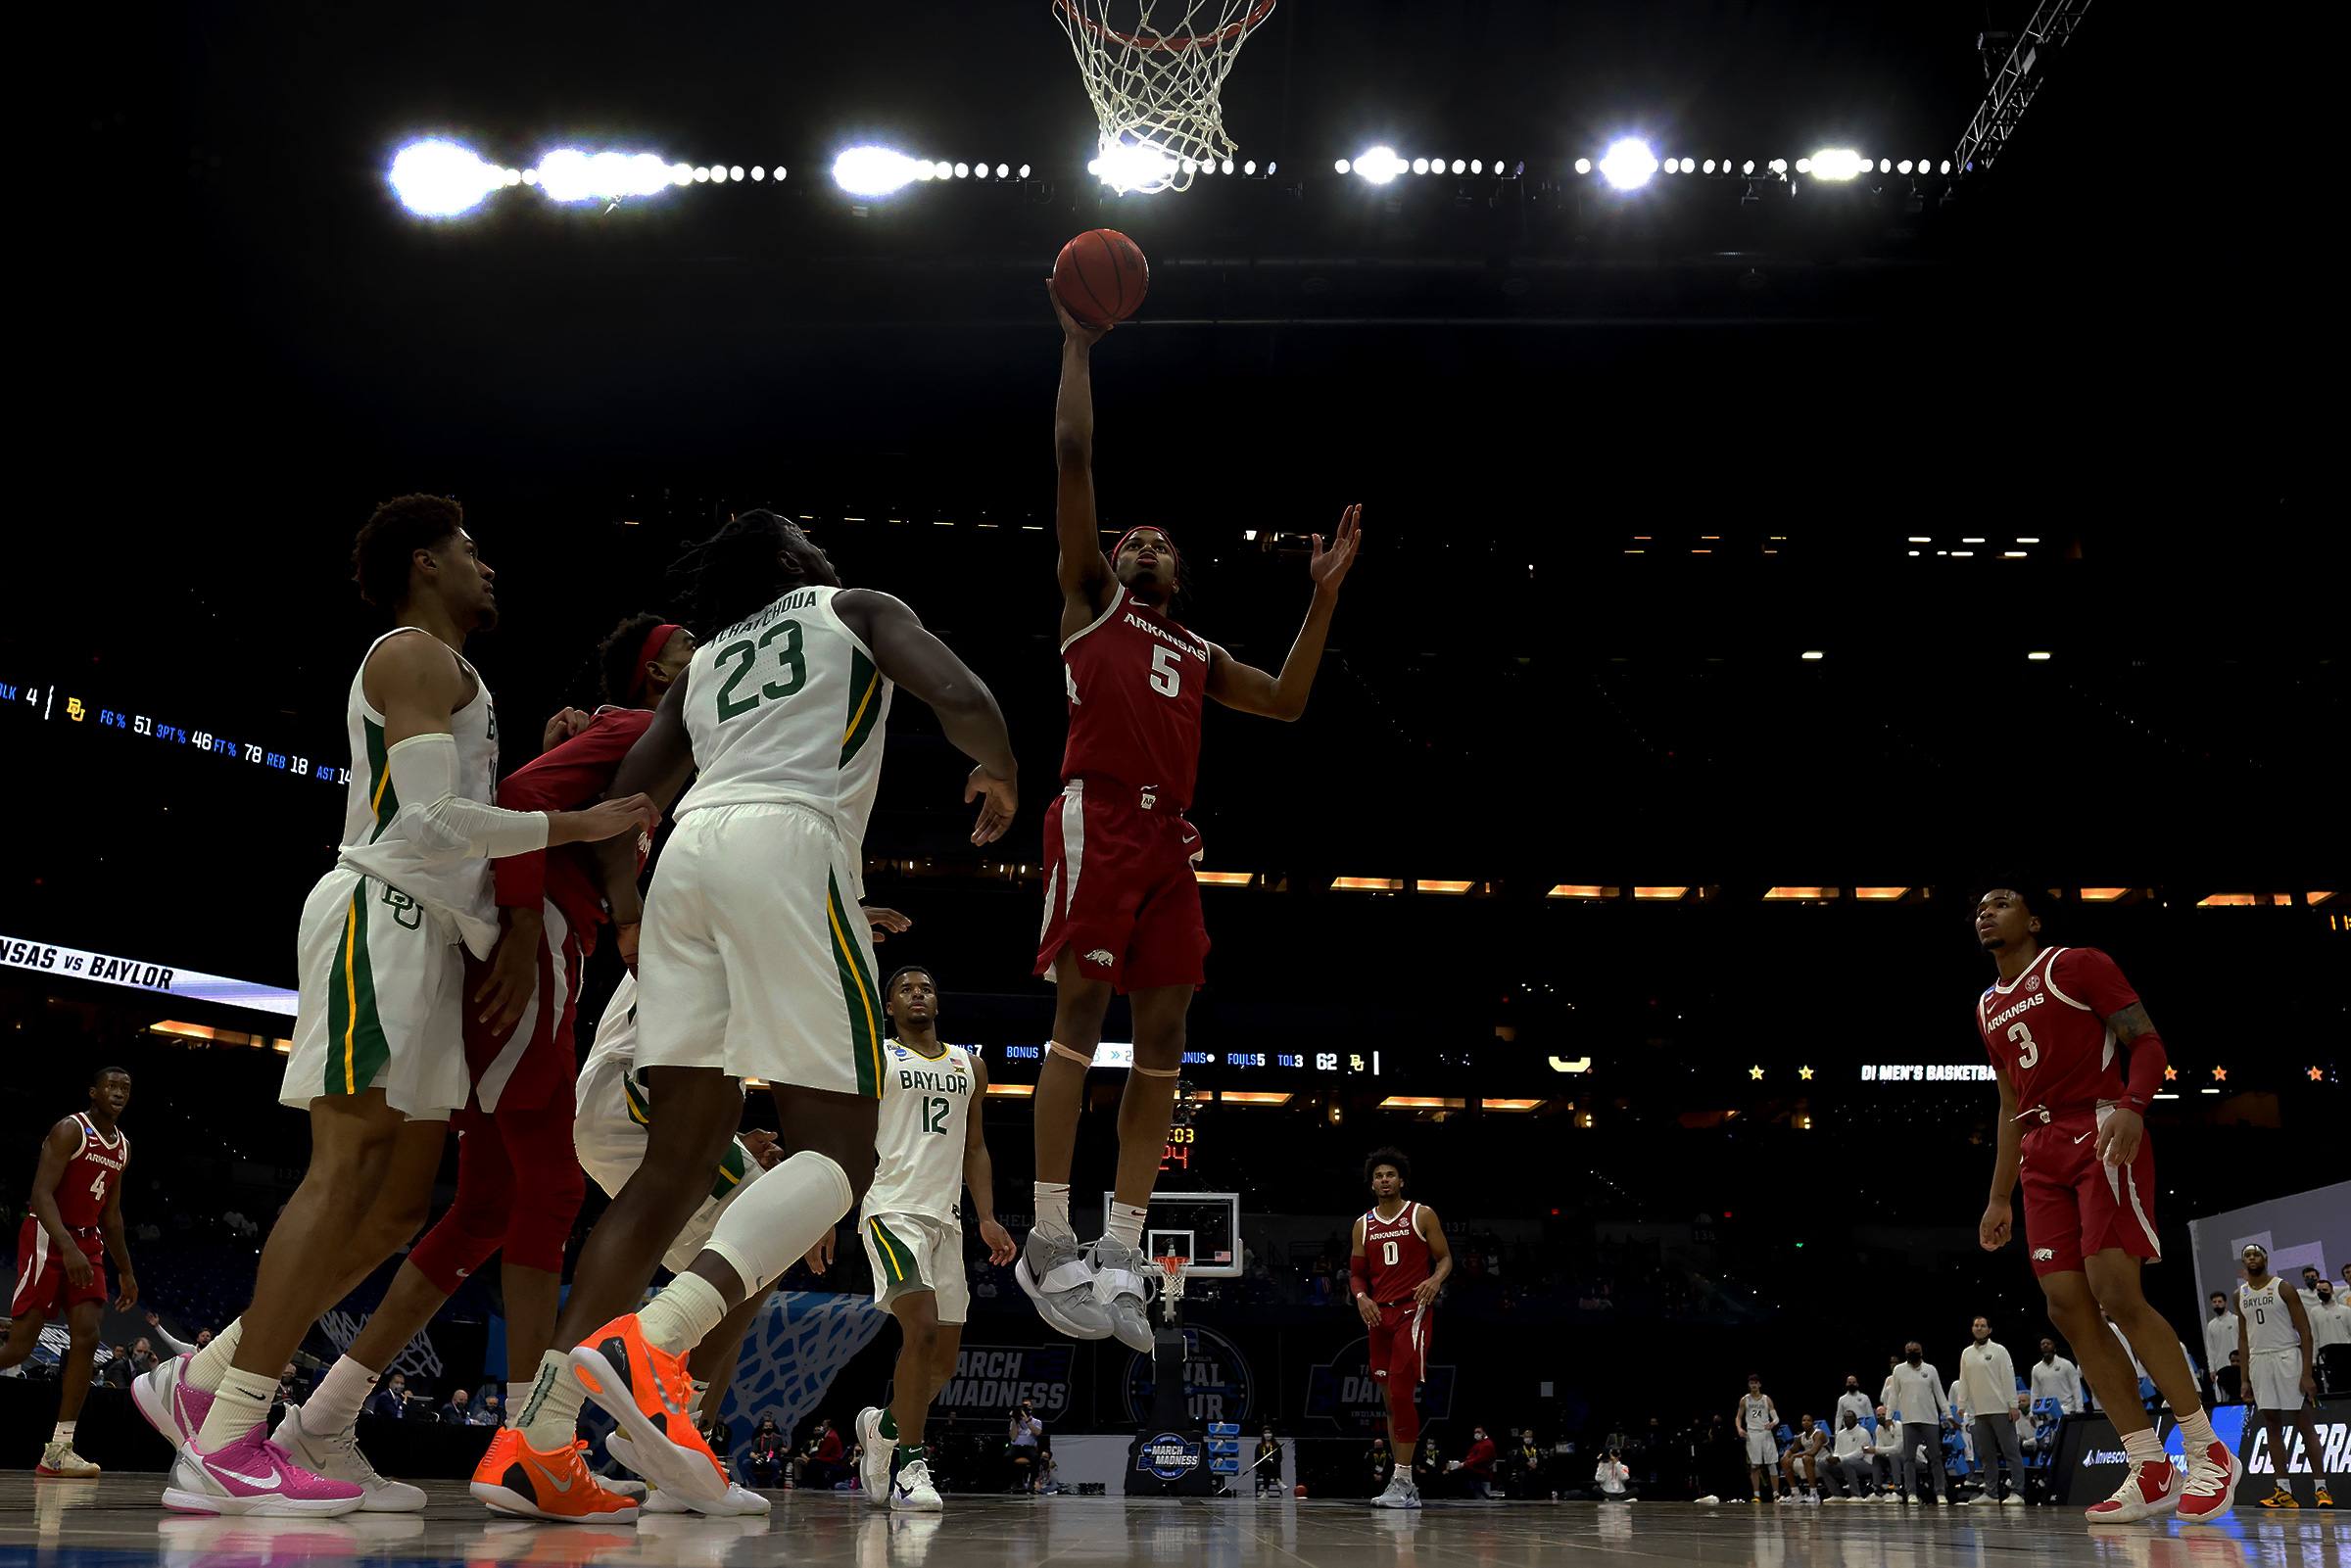 Moses Moody #5 of the Arkansas Razorbacks scores against the Baylor Bears in the Elite Eight round of the 2021 NCAA Division I Men's Basketball Tournament held at Lucas Oil Stadium on March 29, 2021 in Indianapolis, Indiana.